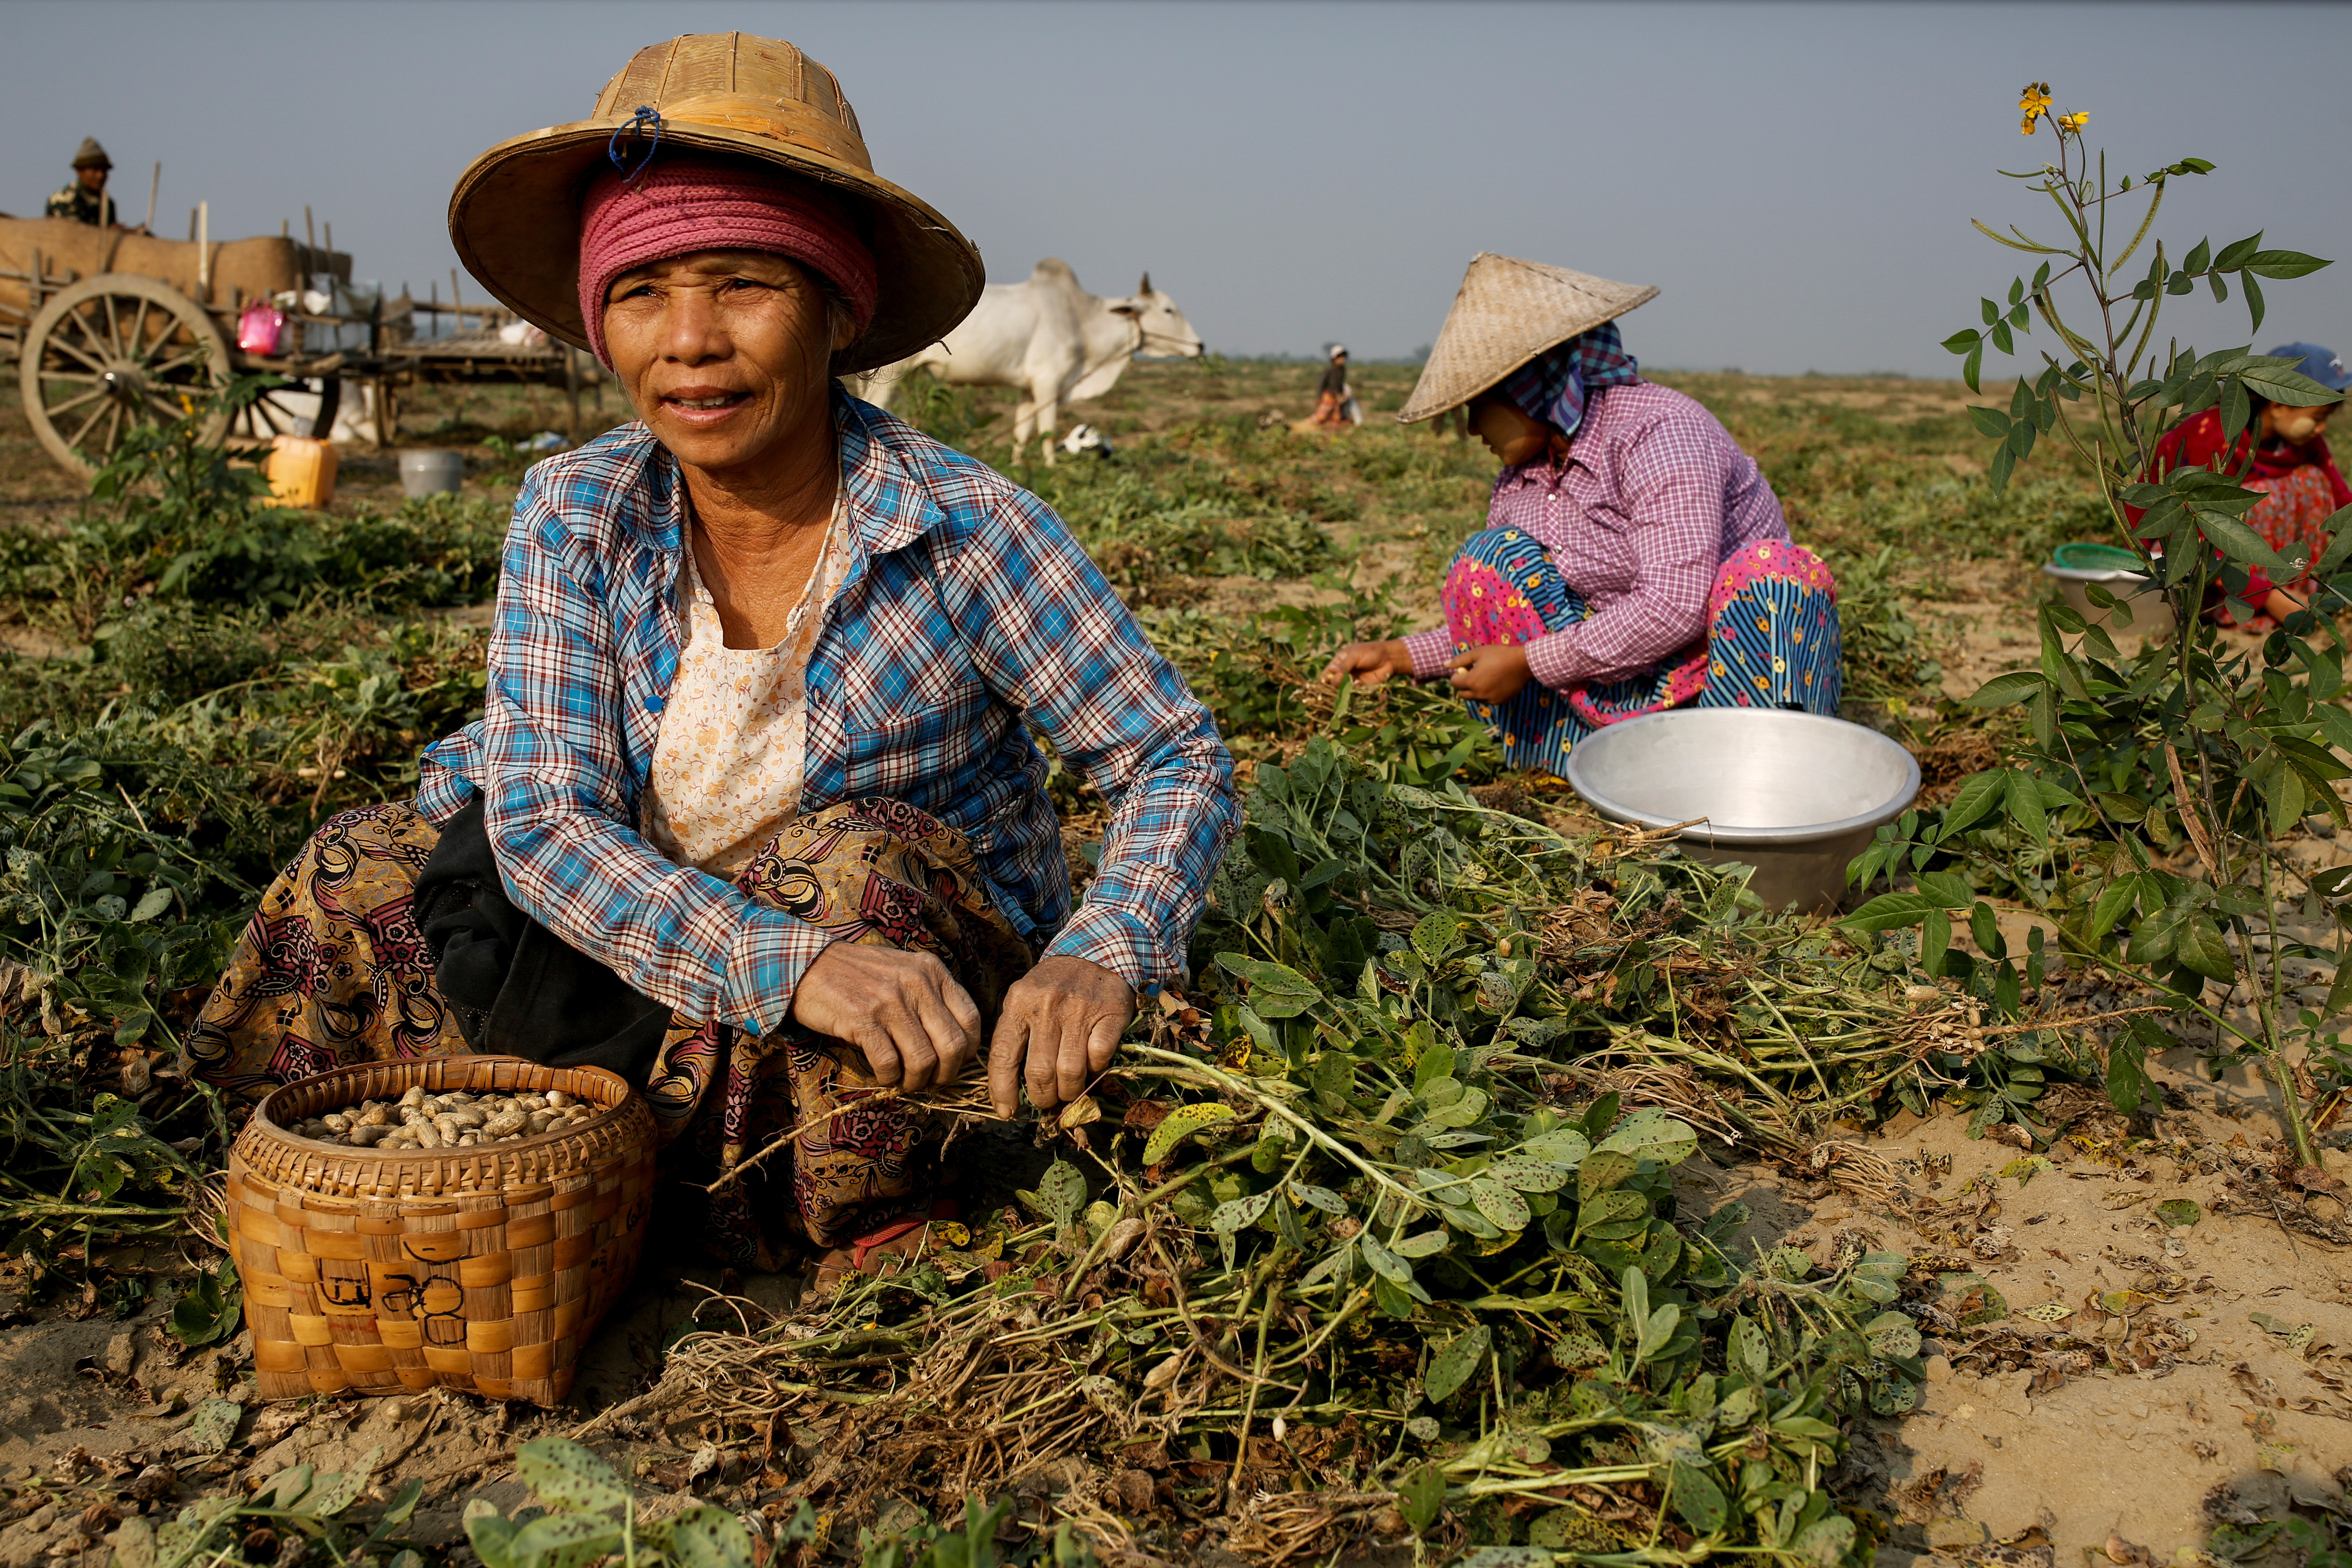 """Mya Lay (R), 25, and her colleagues, who used to work at a marble mine but lost their jobs, pick leftover peanuts at a farm where they now work in Sagyin, Mandalay, Myanmar, February 15, 2019. """"I was born in this village and for generations this is what we have done: the men work on marble carving and the women work in the marble mines or polish the marble statues,"""" said Lay. REUTERS/Ann Wang     SEARCH """"SAGYIN MARBLE"""" FOR THIS STORY. SEARCH """"WIDER IMAGE"""" FOR ALL STORIES. - RC20LH9Q2I4O"""